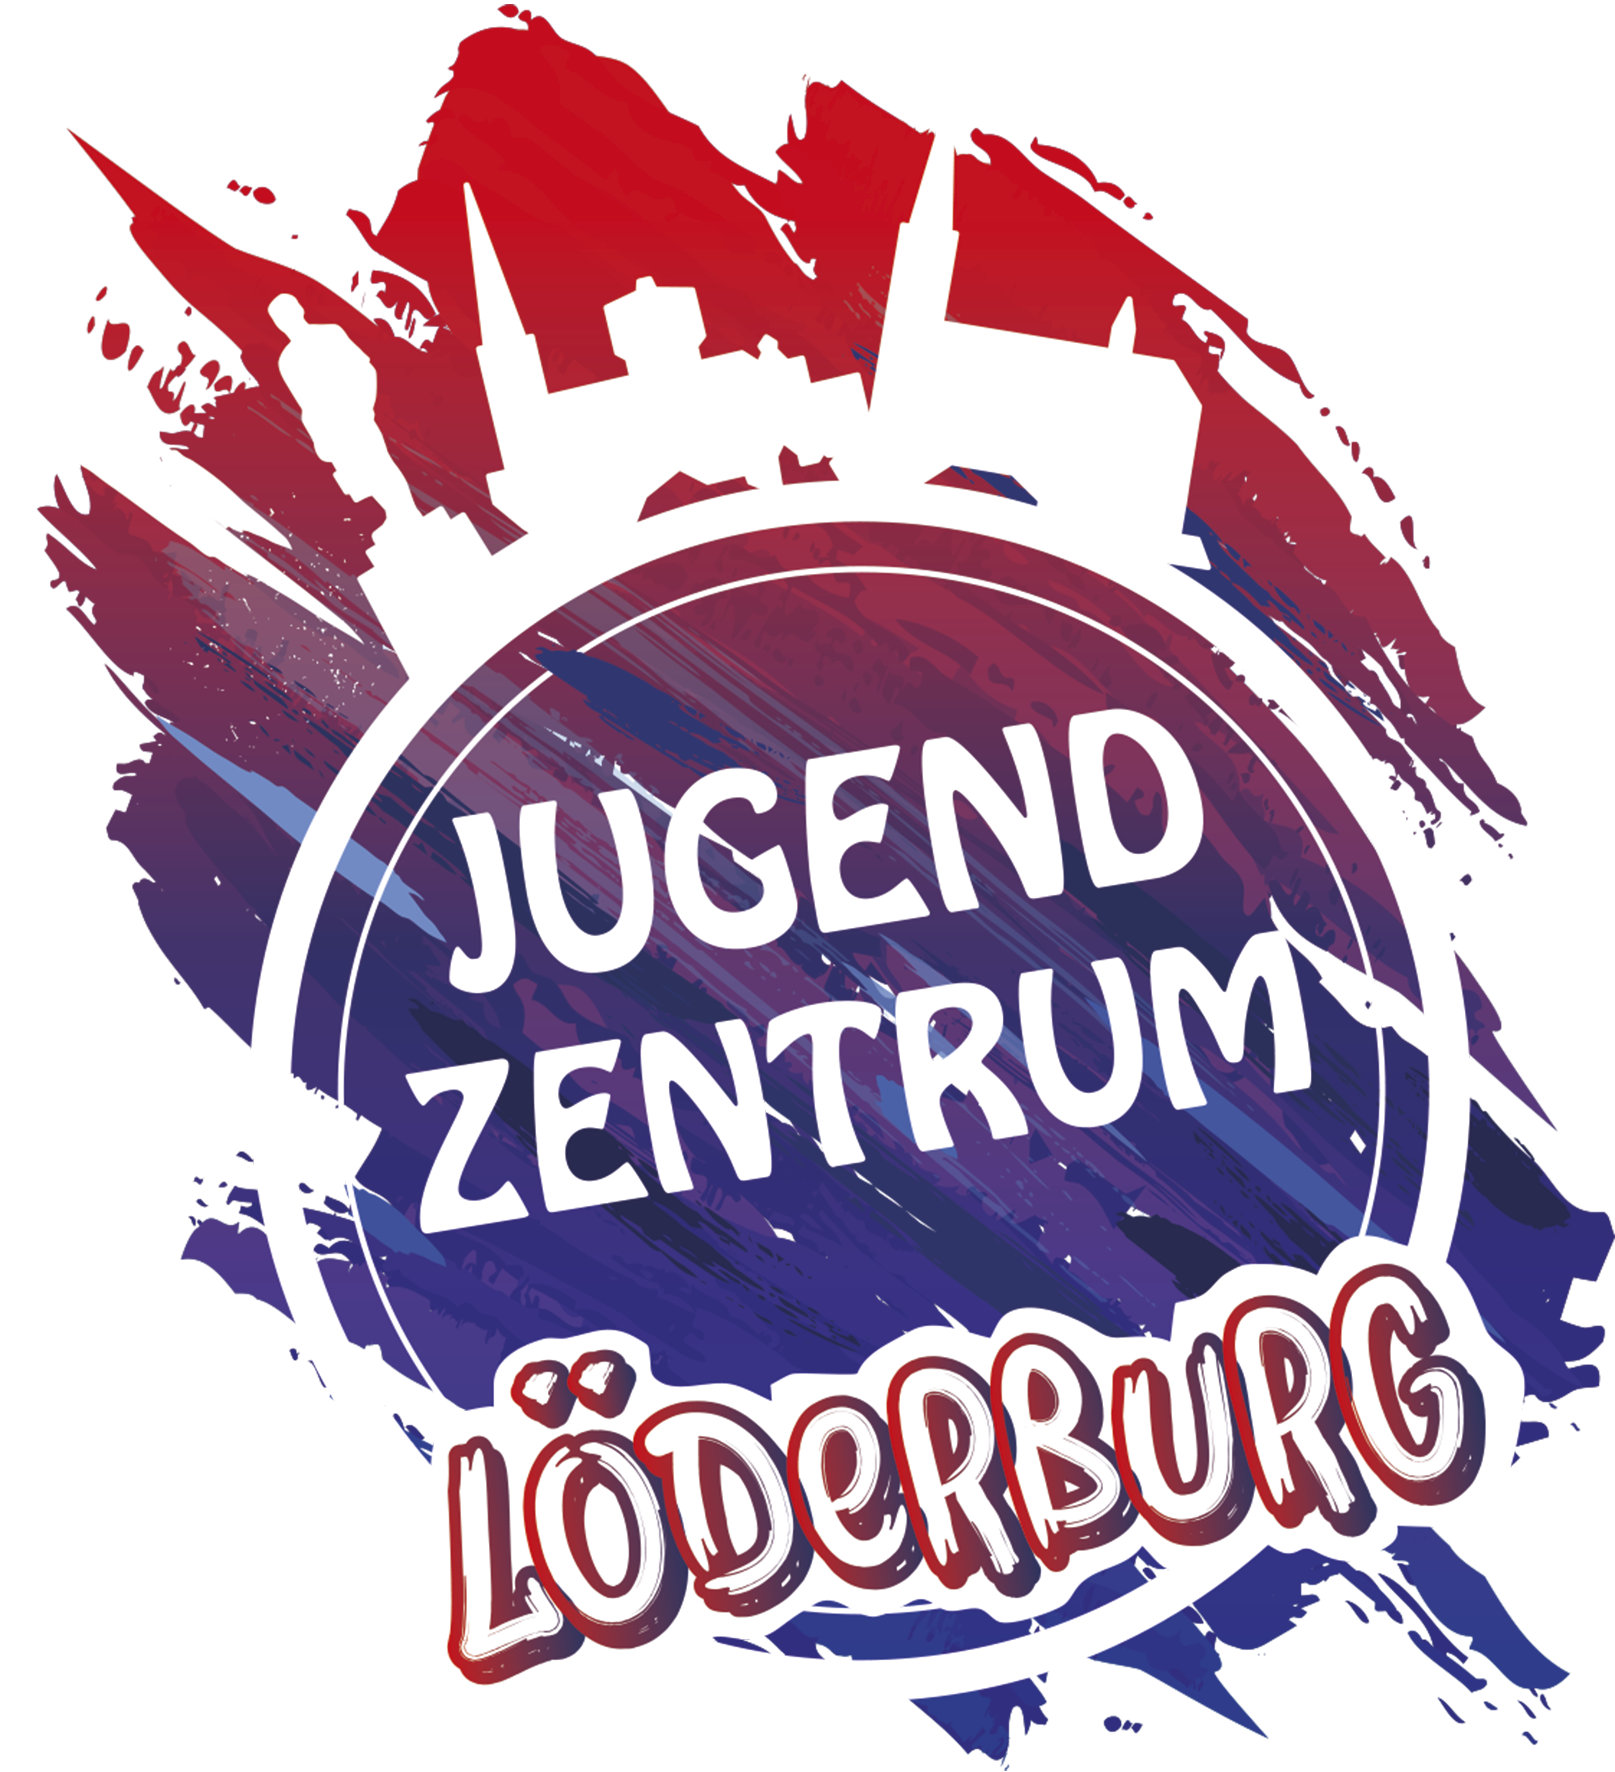 Kinder- und Jugendzentrum Löderburg